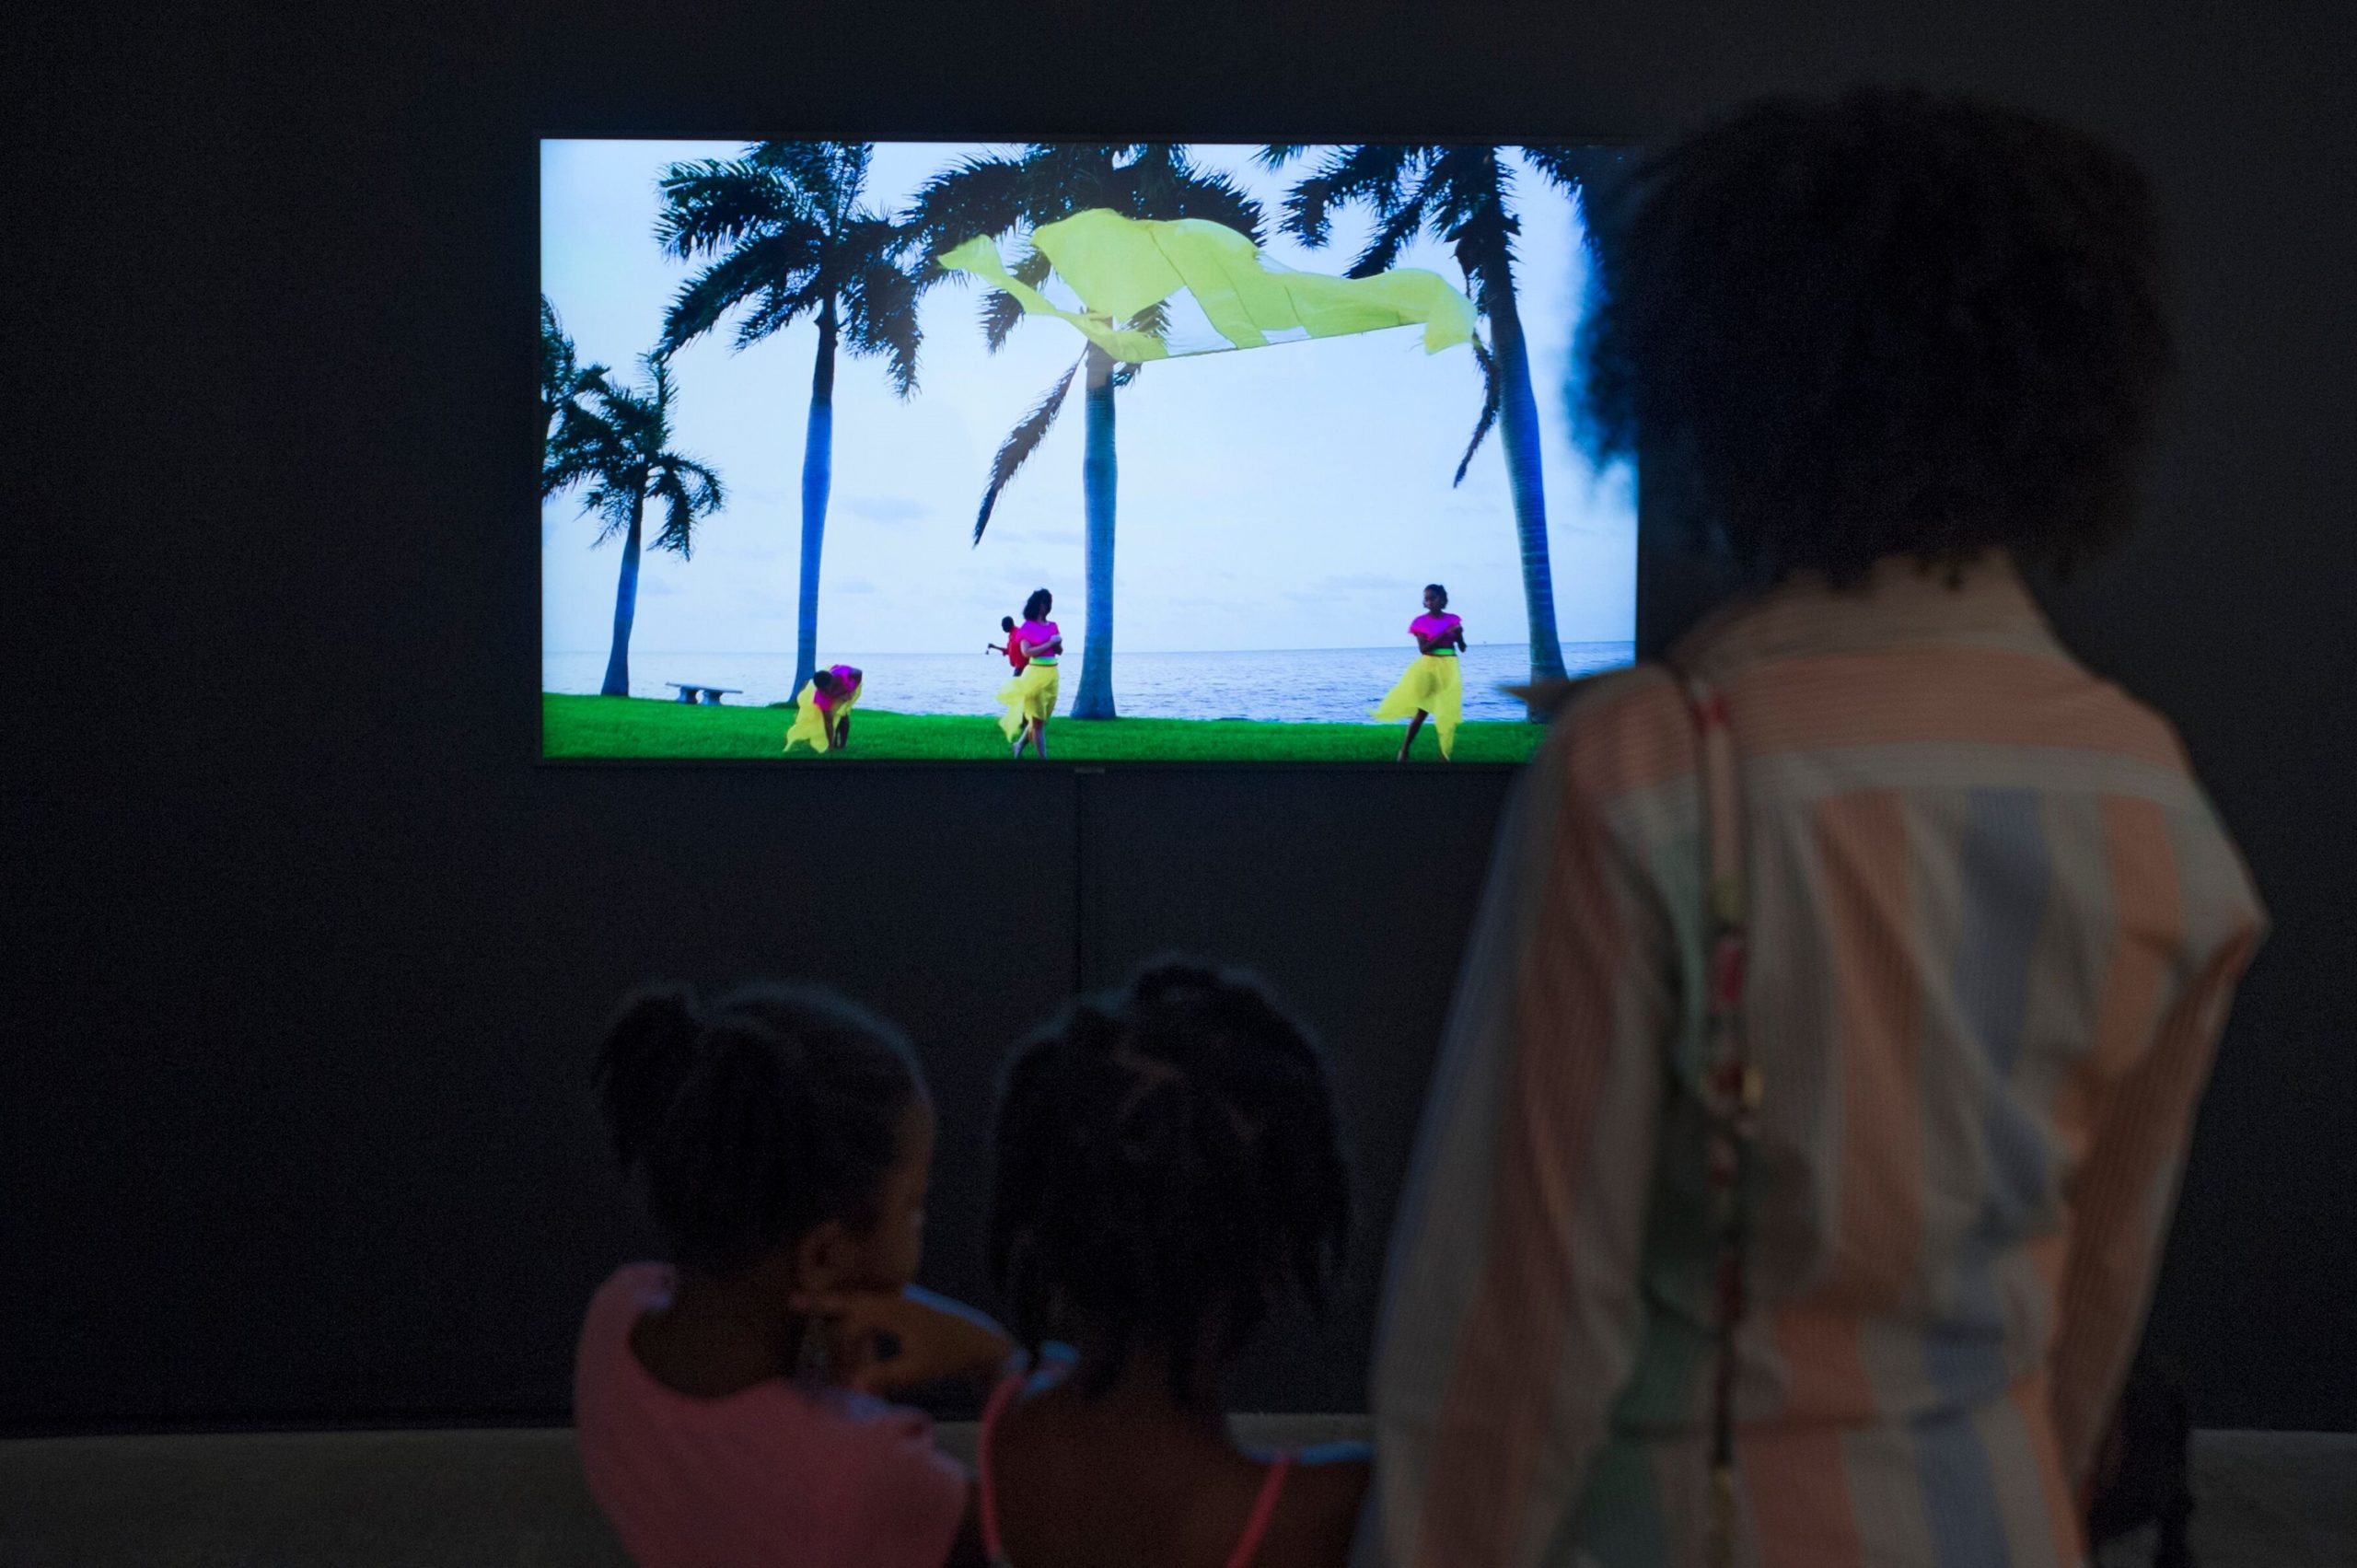 Installation view of video by Felecia Chizuko Carlisle at MOCA Nomi